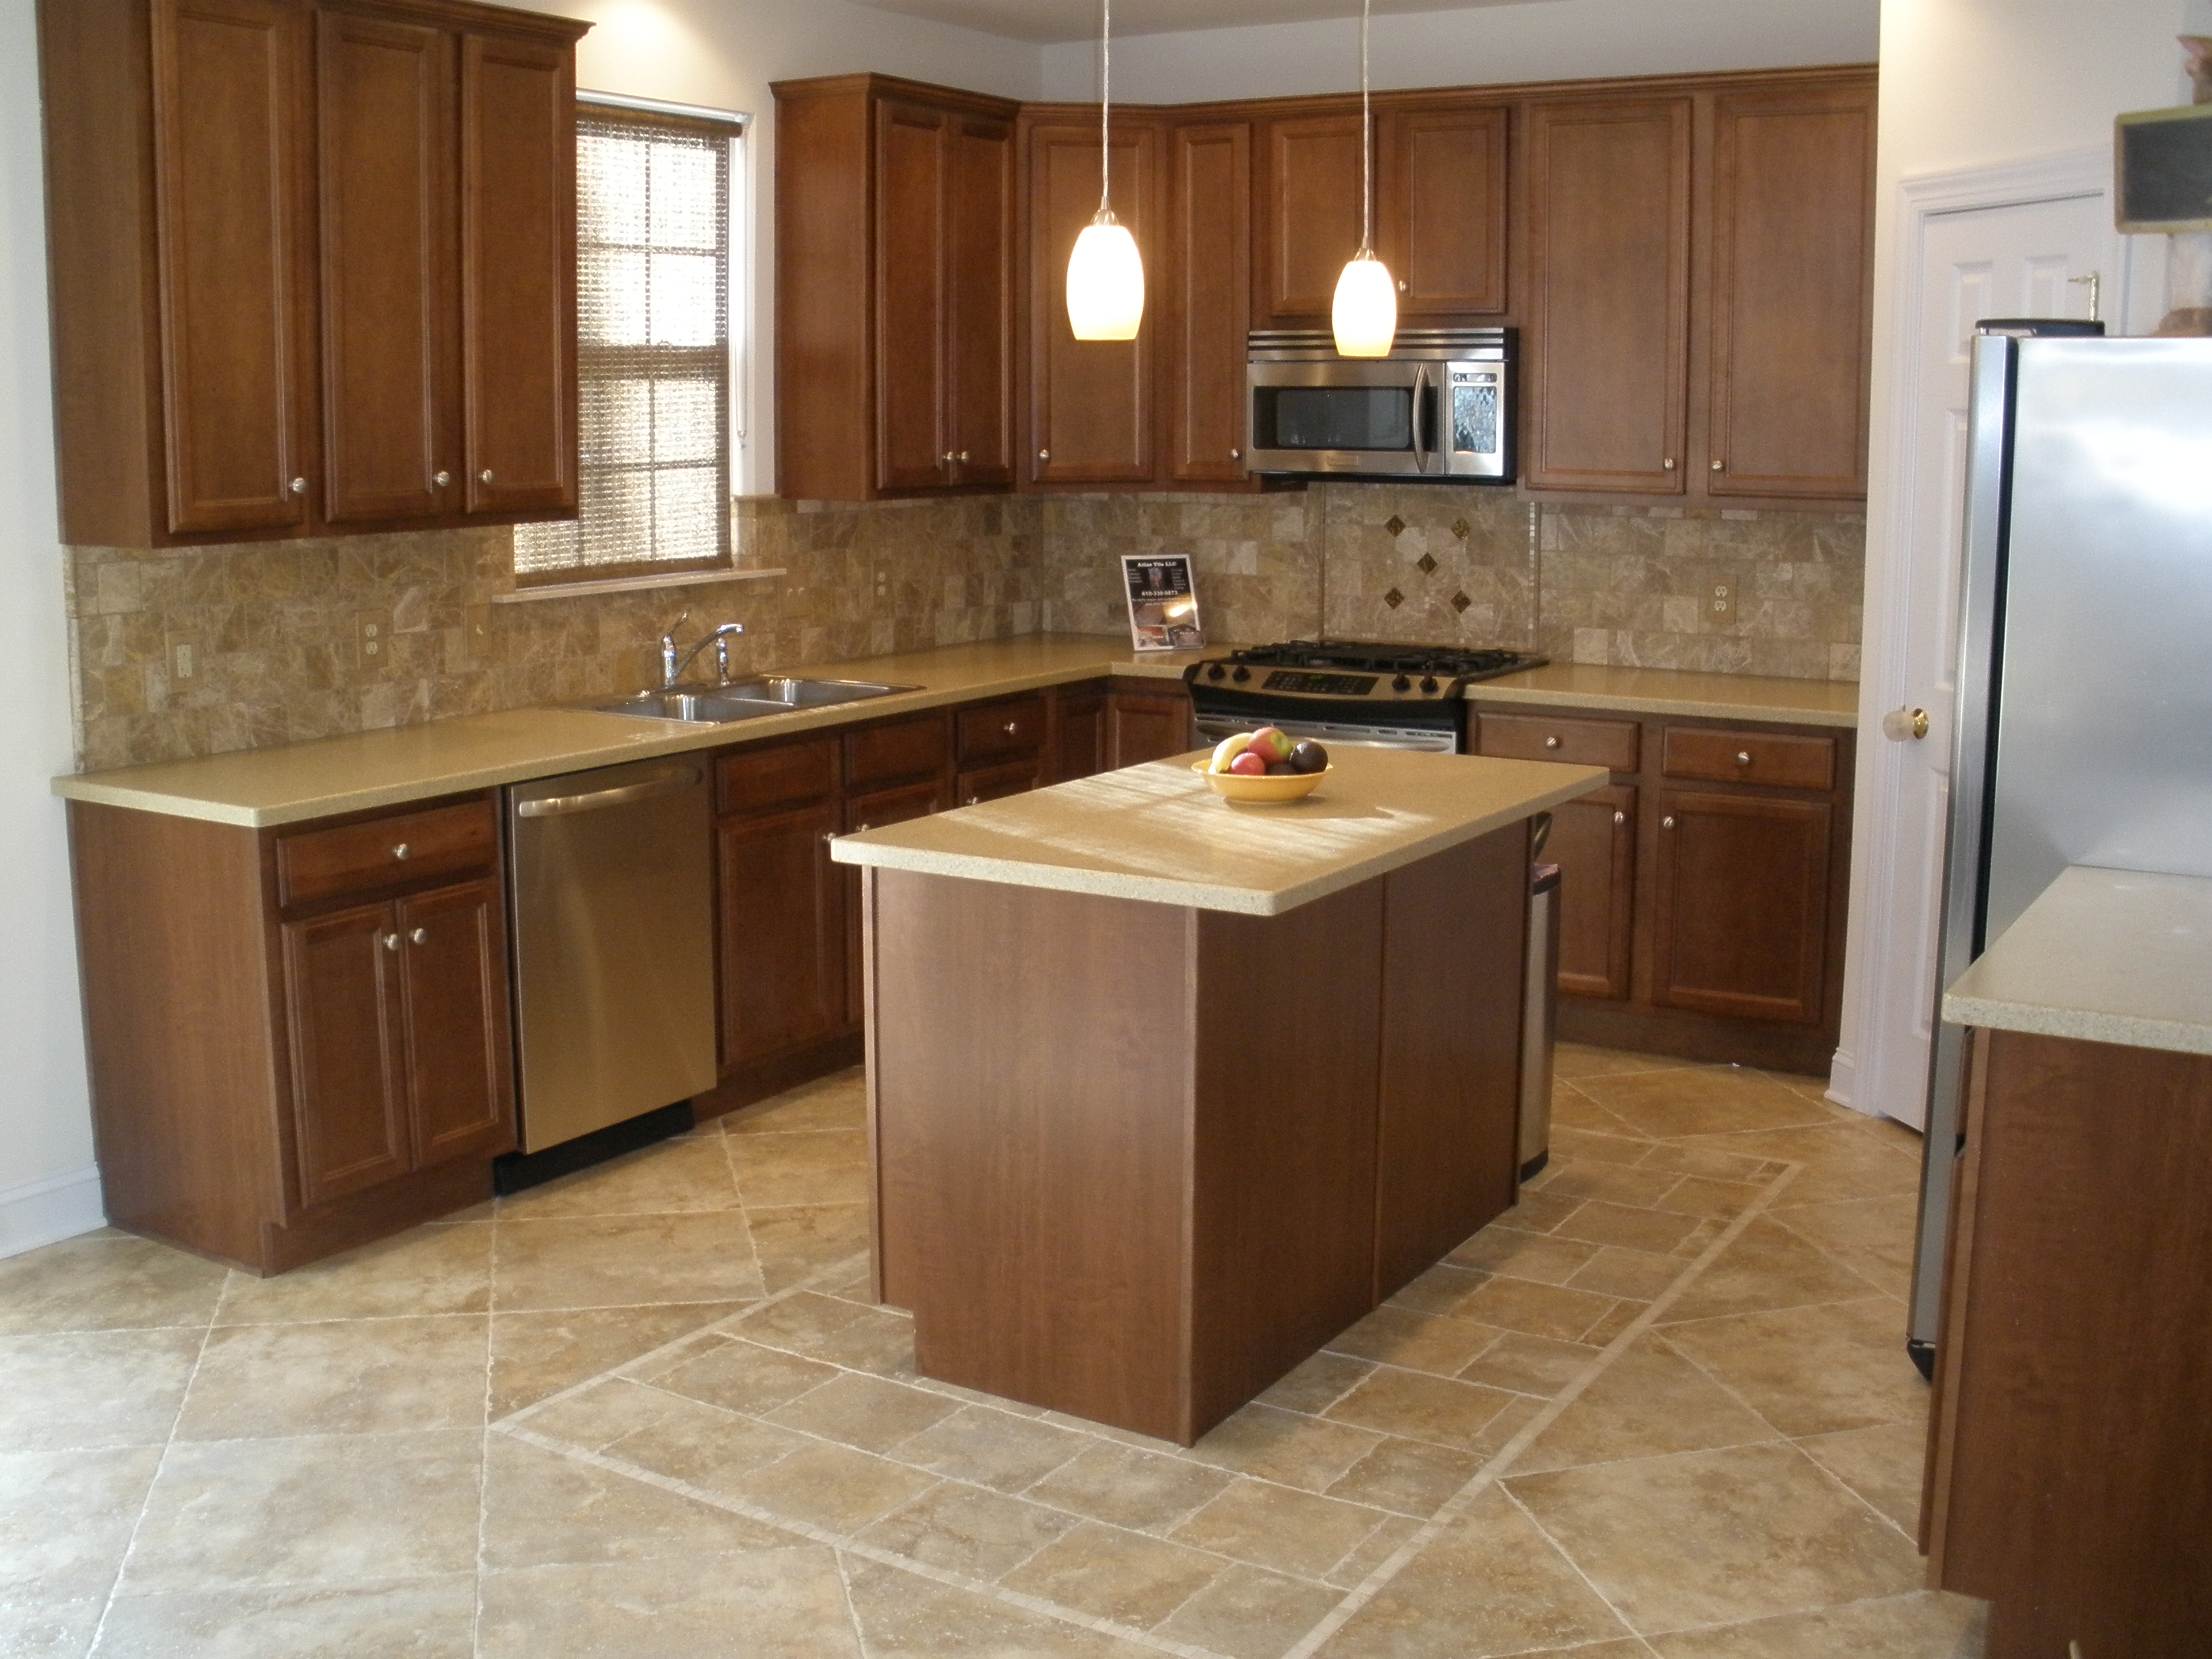 Uncategorized Kitchen Design Lowes design a kitchen lowes home lowes